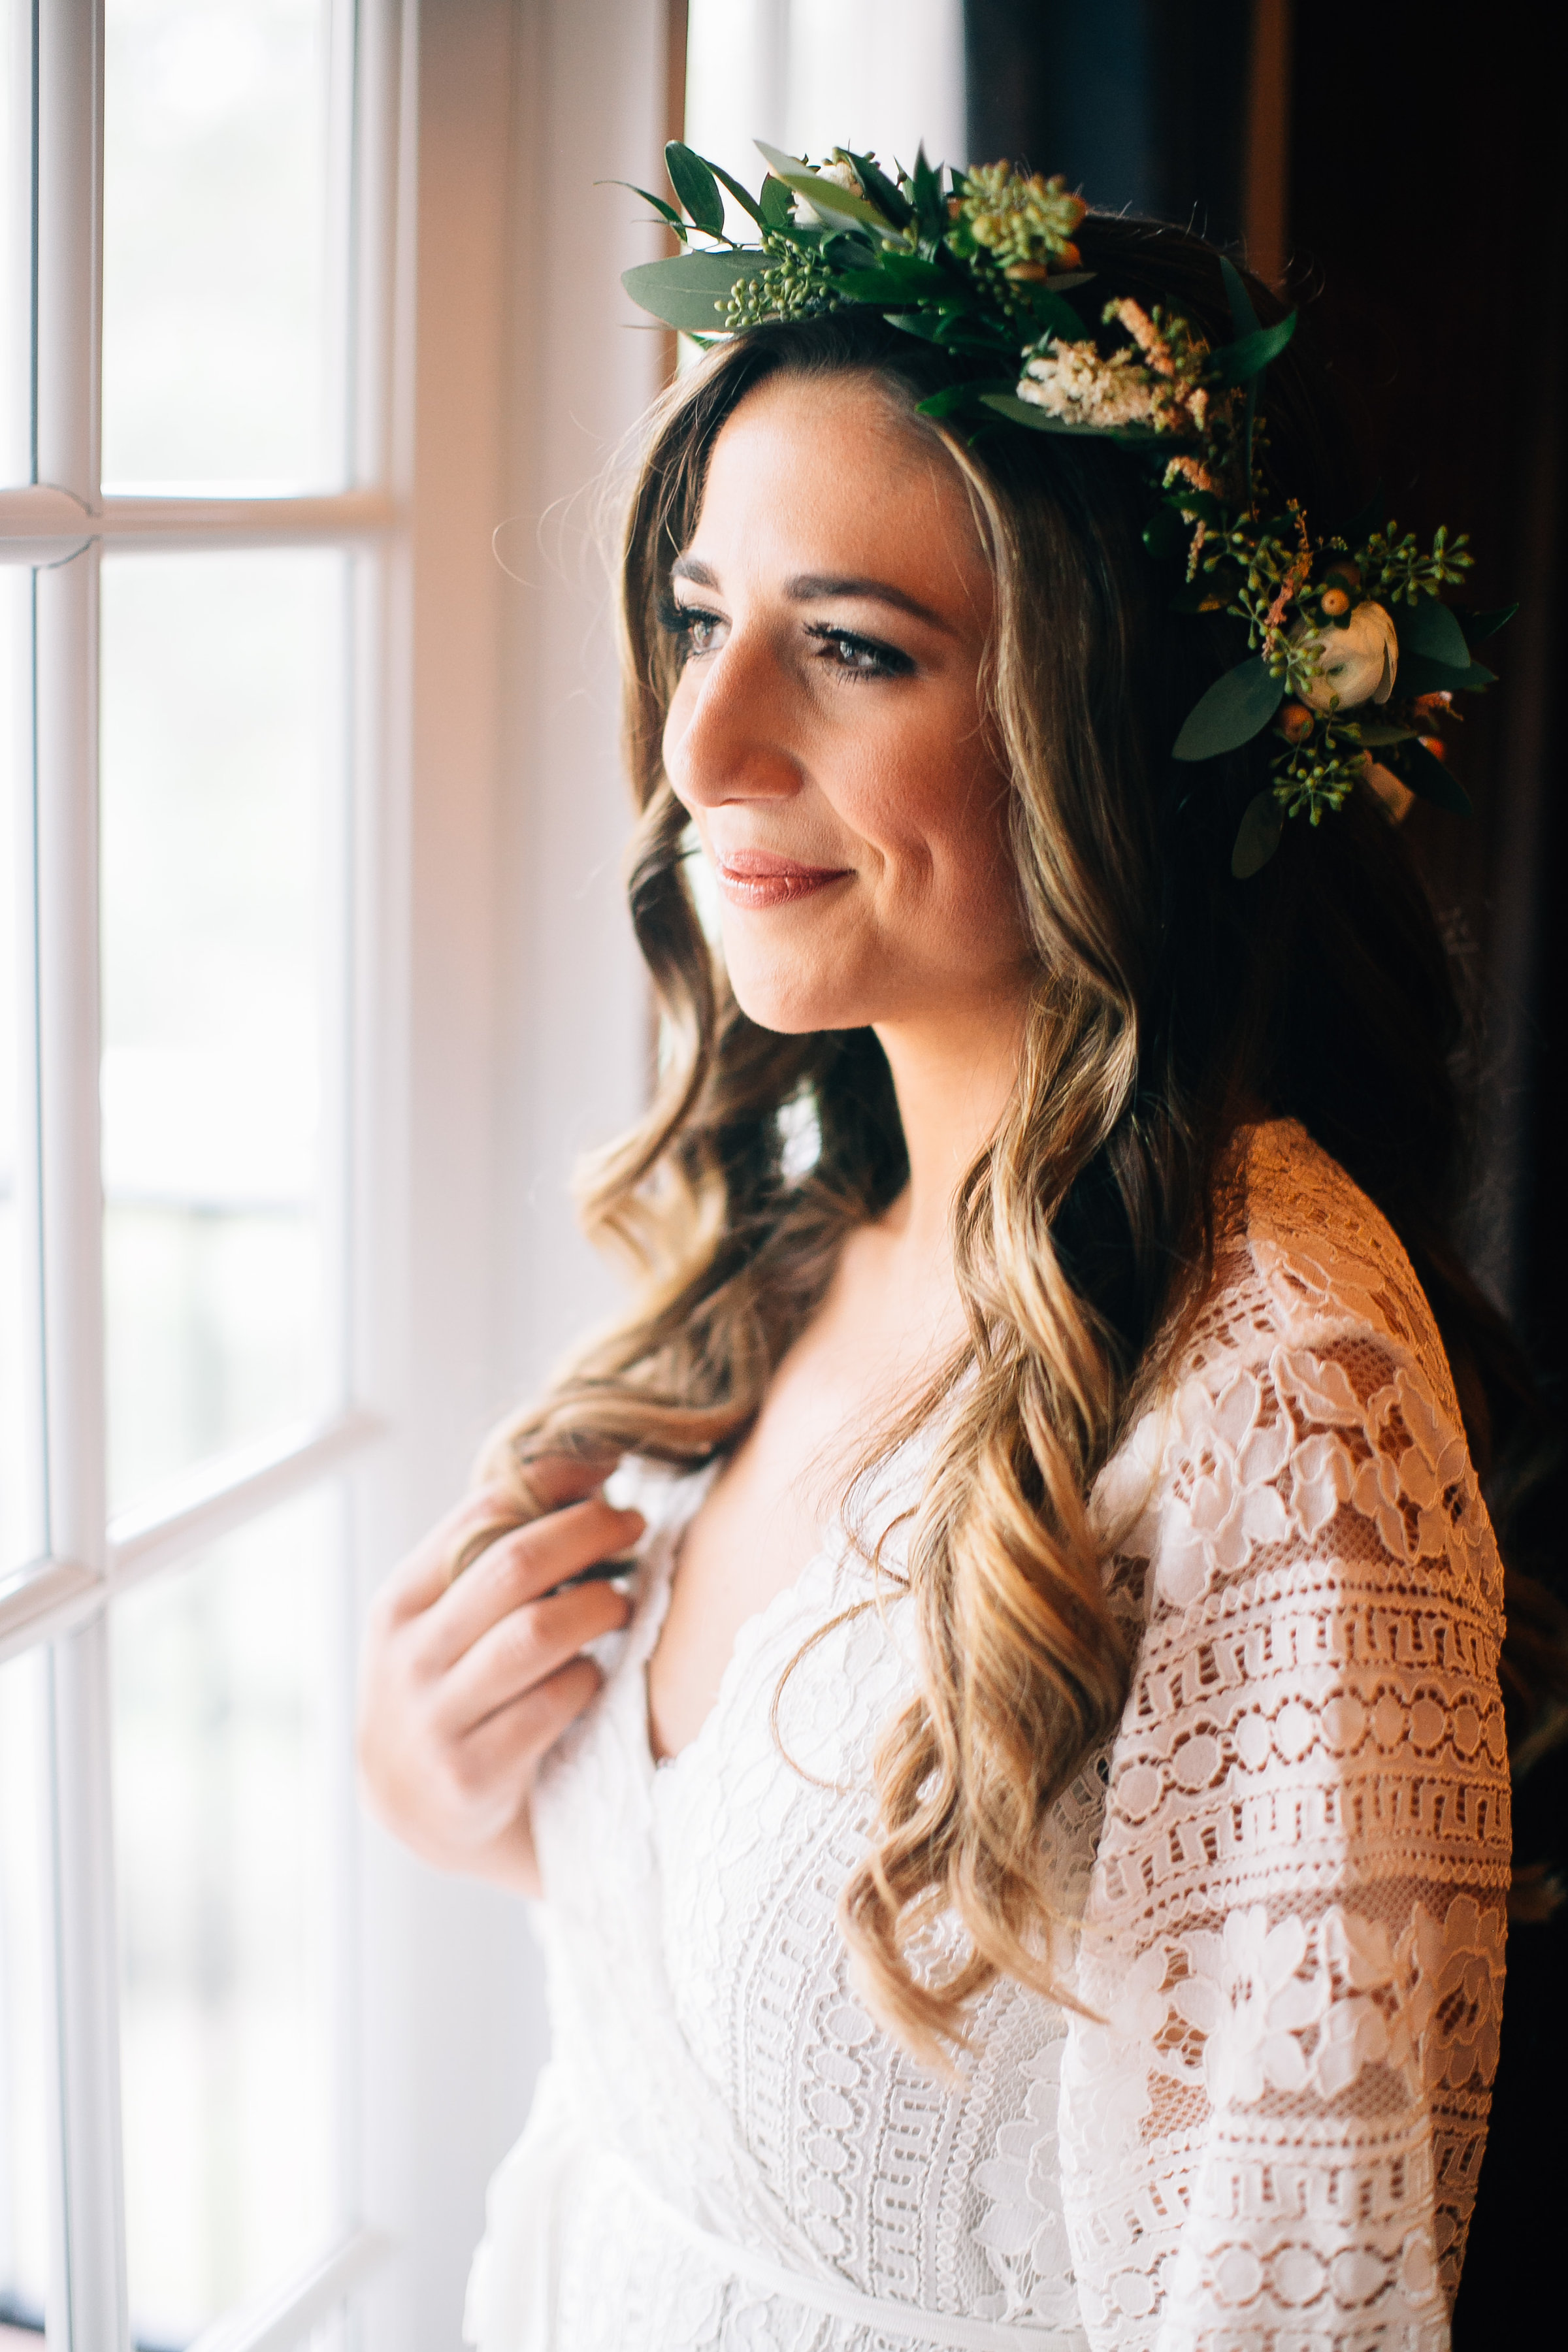 Bride in lace robe with flowercrown getting ready wedding photos